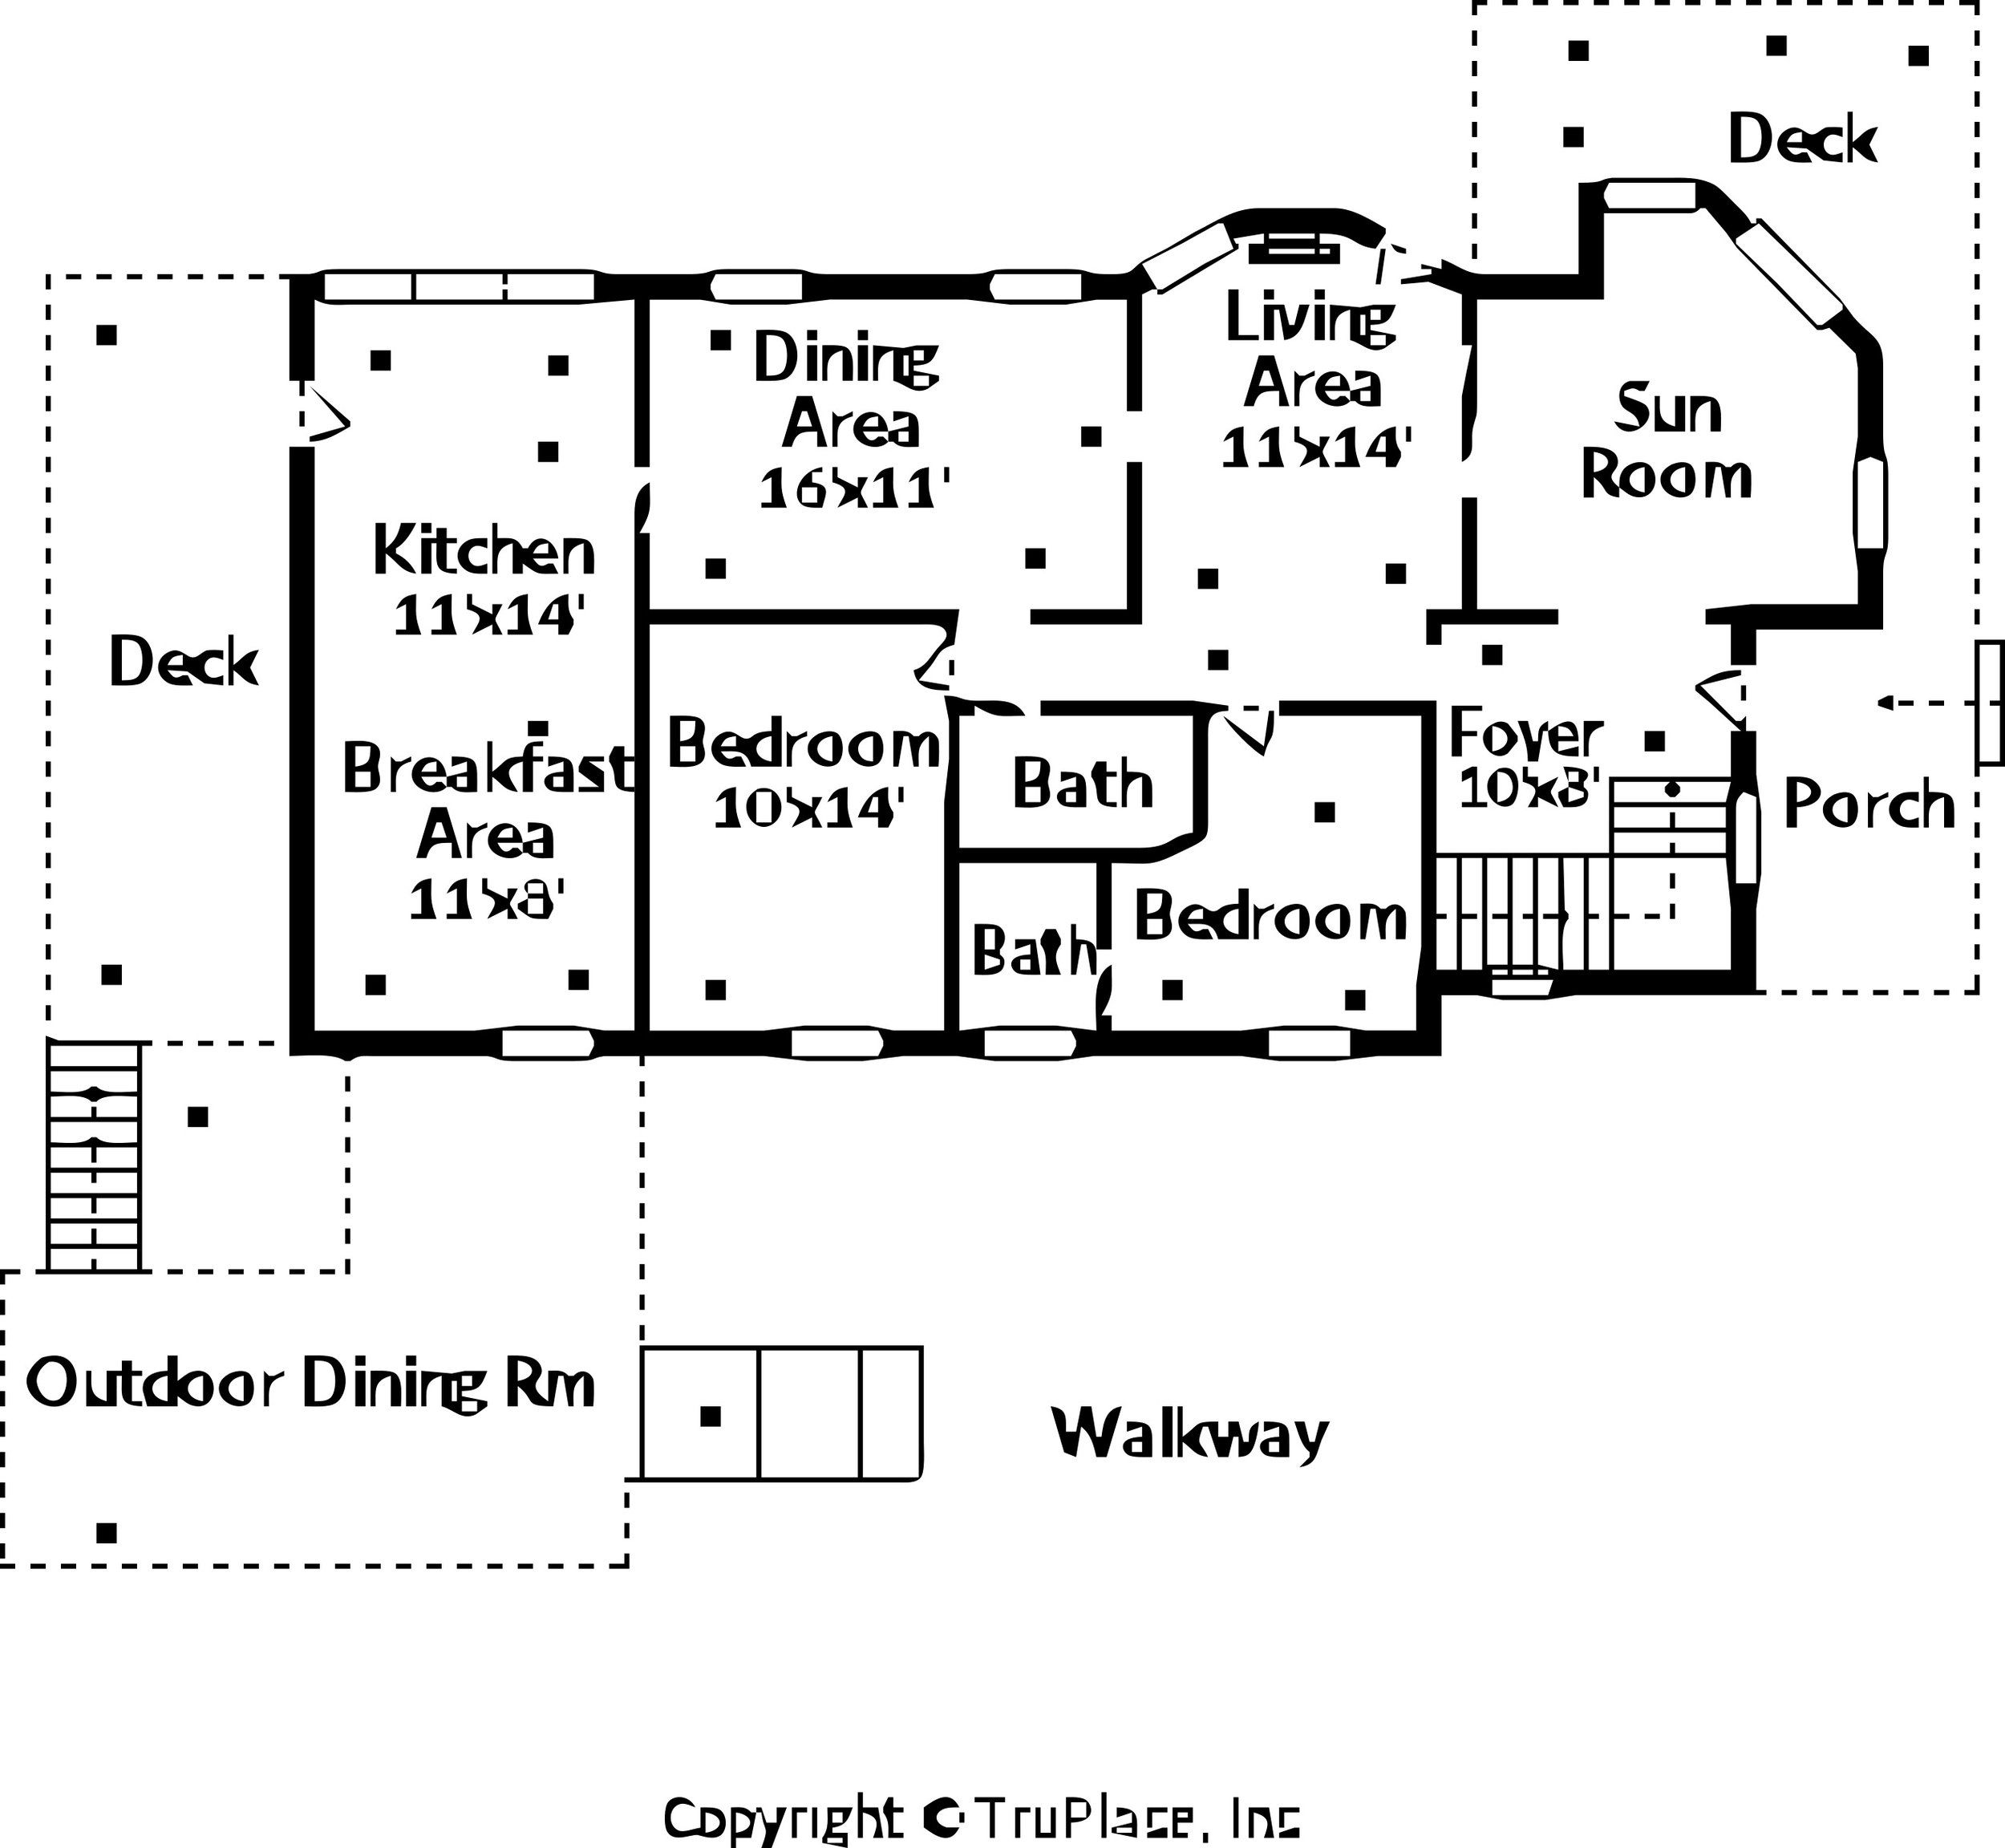 My Wife S Family Vacation Rental Business Needed Some Floor Plans Converted To Vector Graphics Read About How I Wrote A Vector Graphics Graphic Vector Images